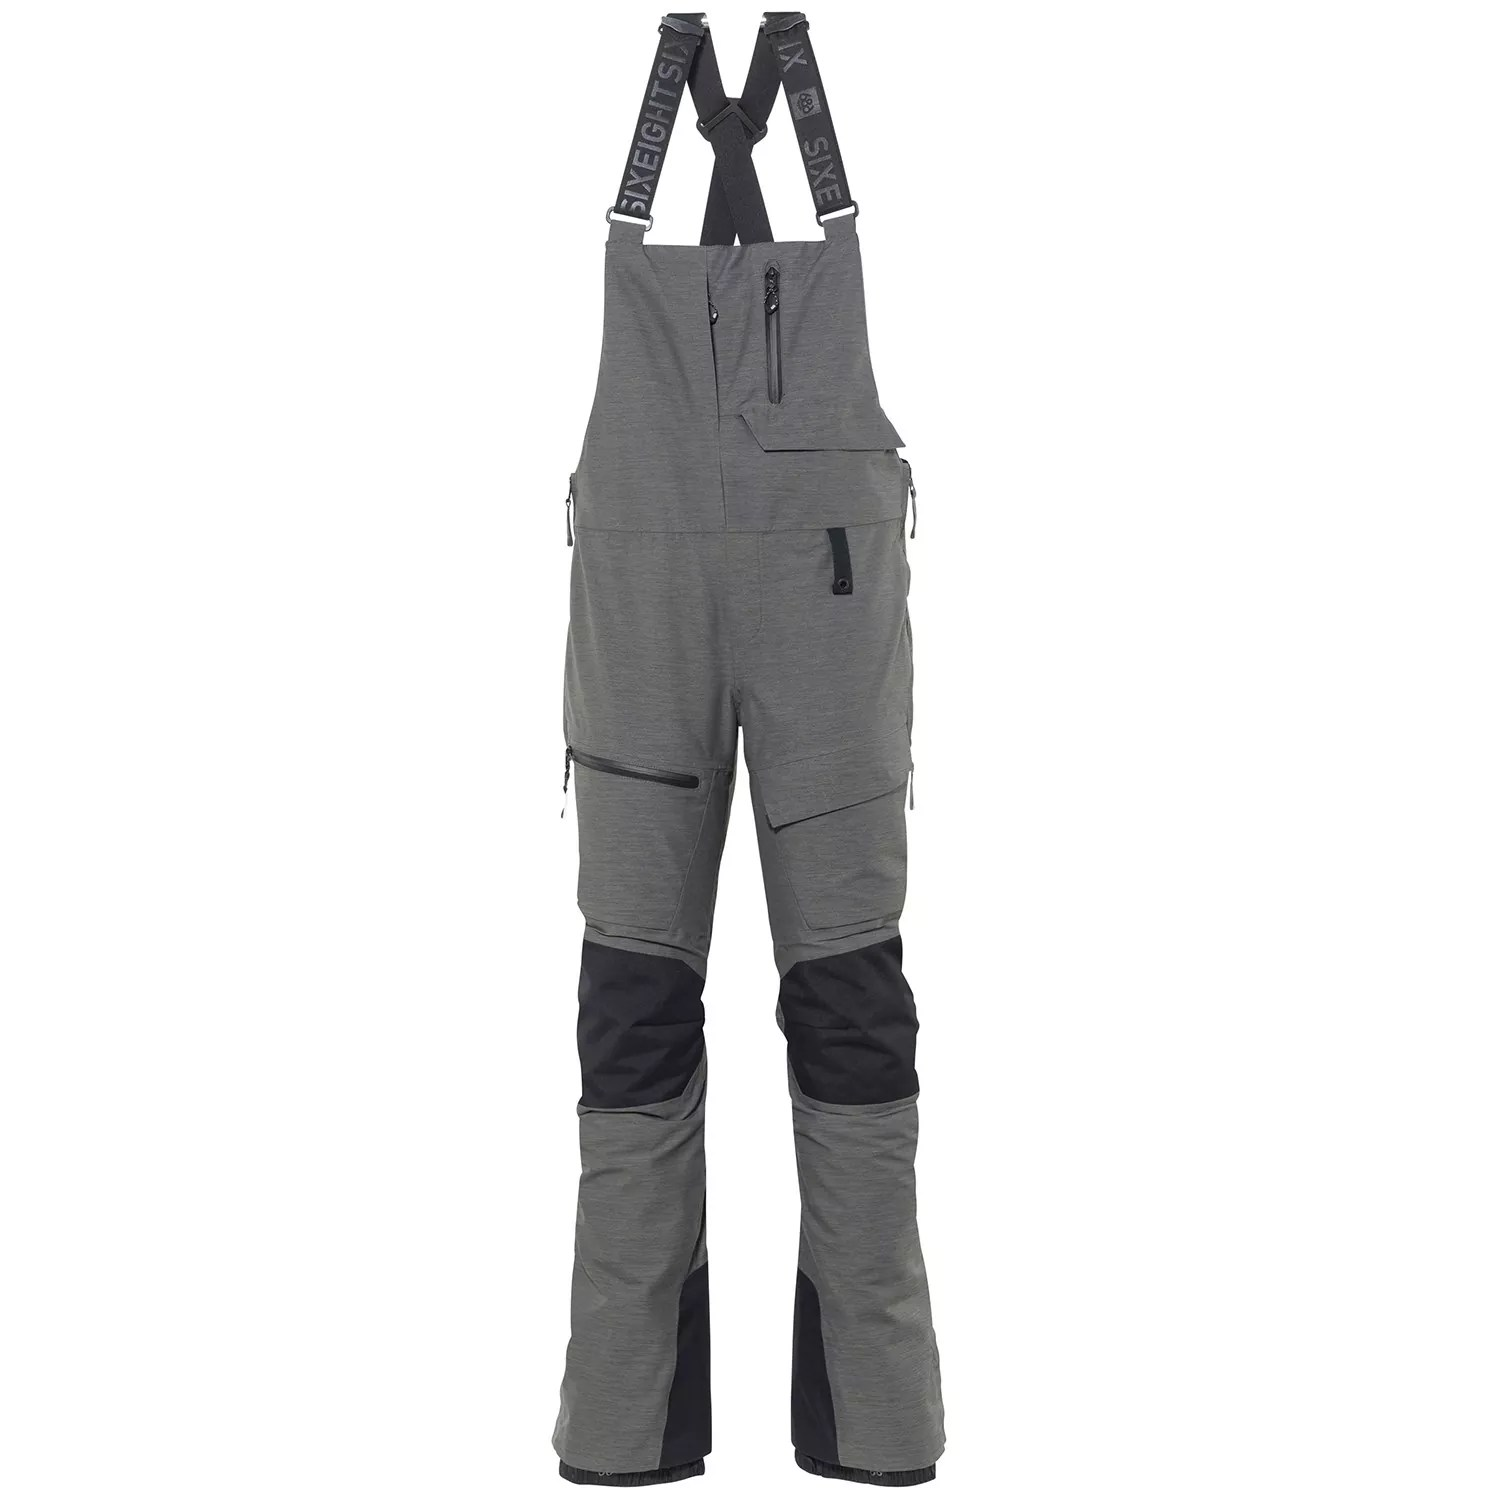 686 GLCR Geode Thermagraph Bibs - Womens